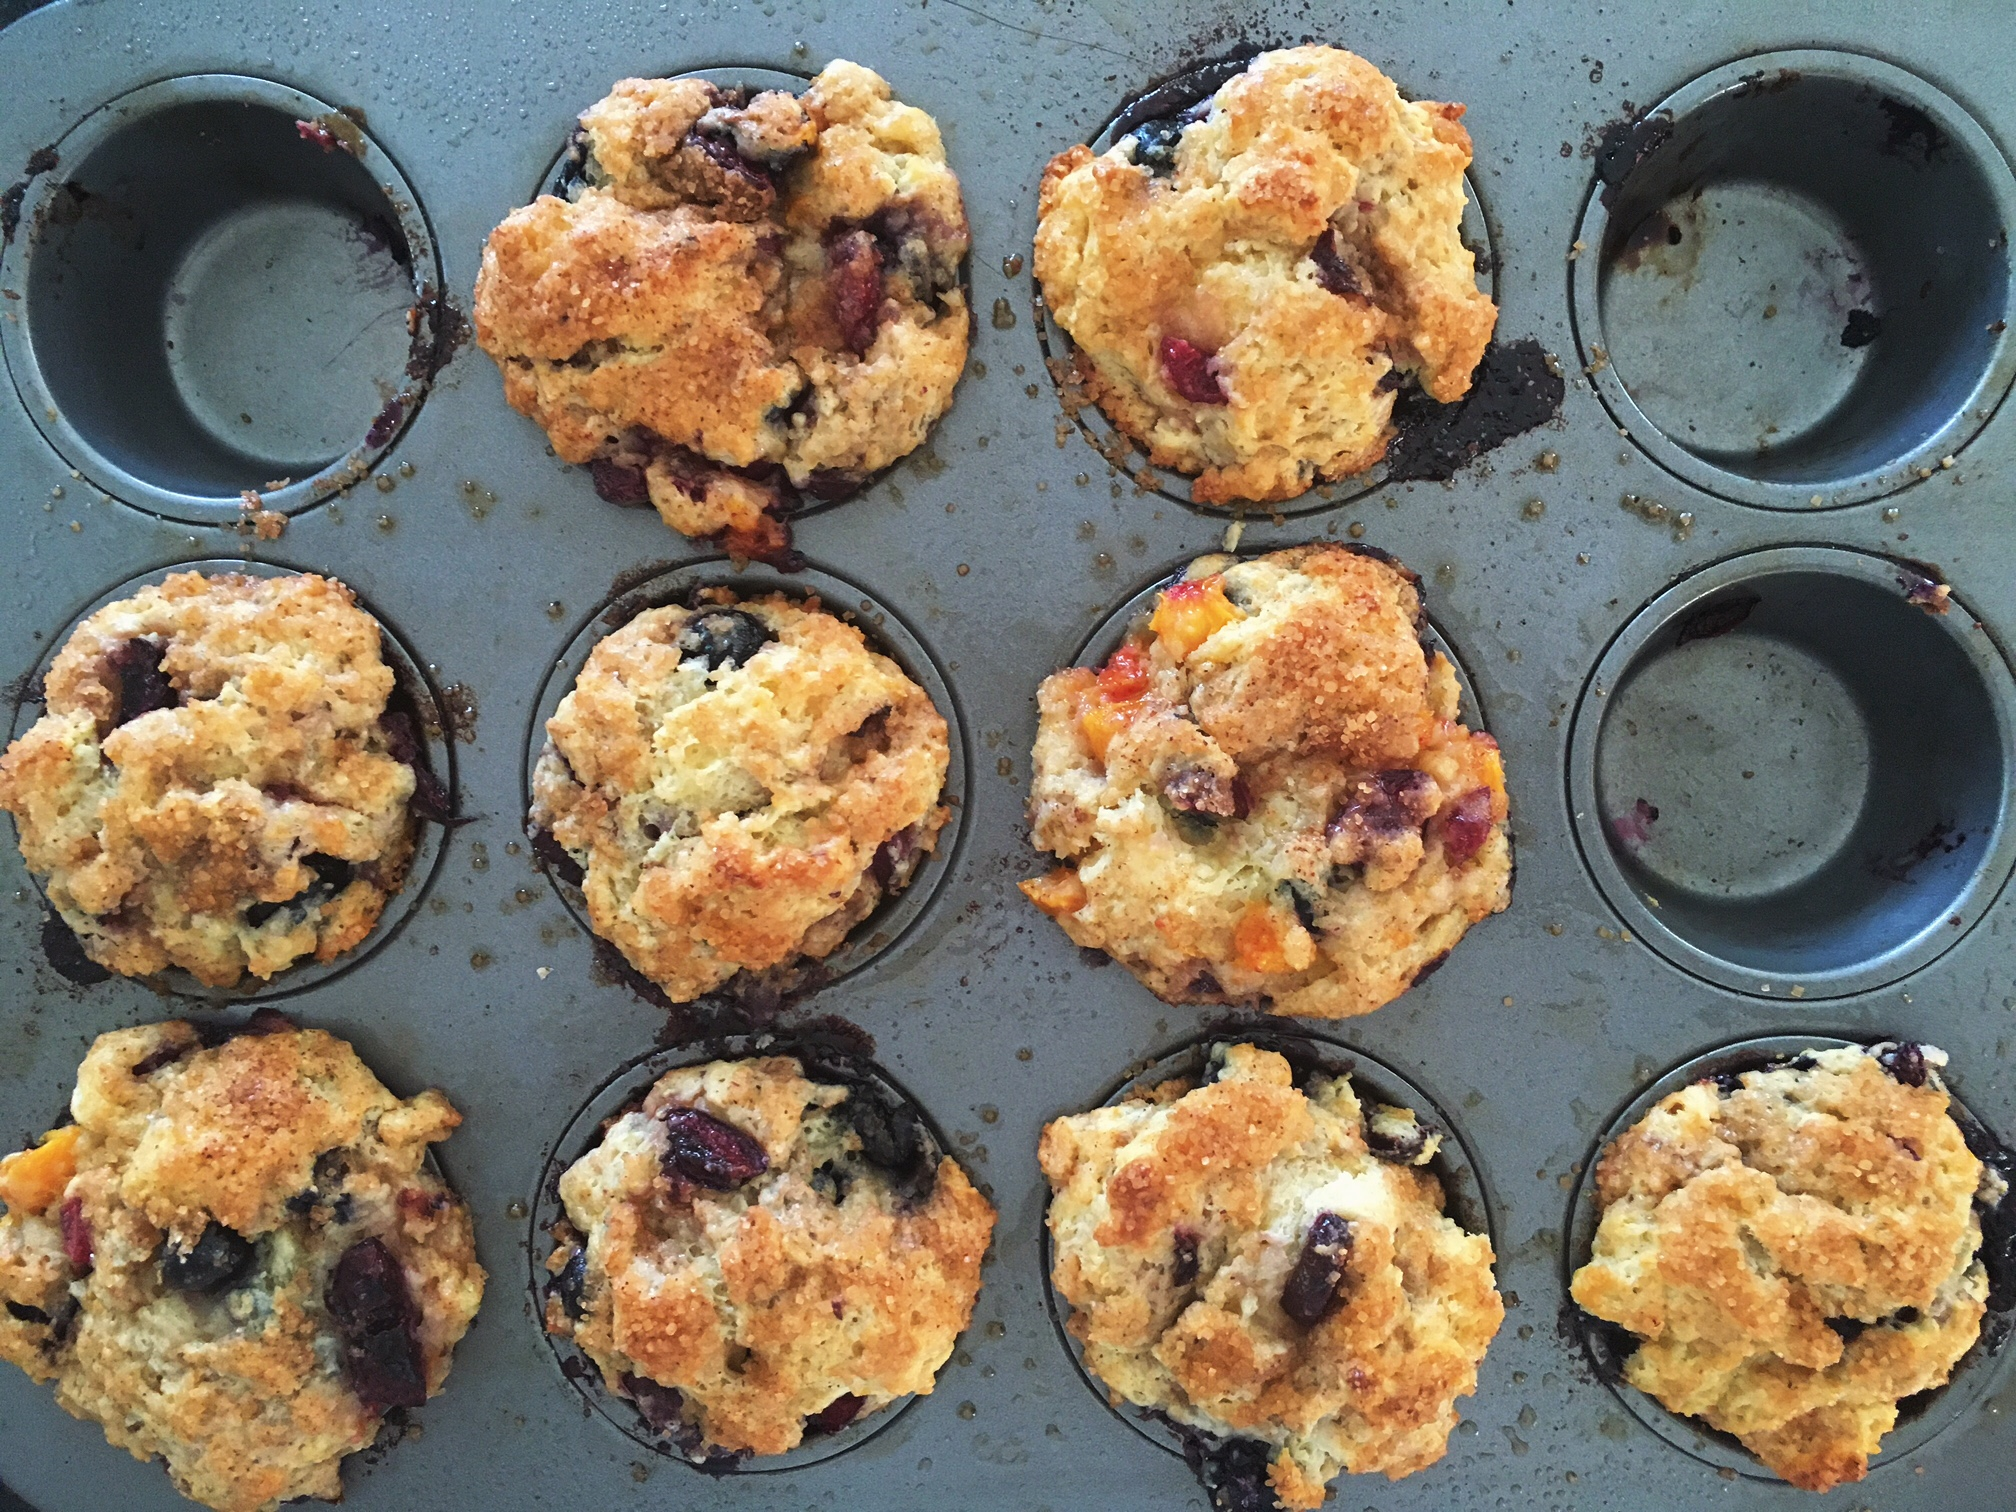 Muffins with peaches and blueberries from the Bhumi Farms CSA last summer